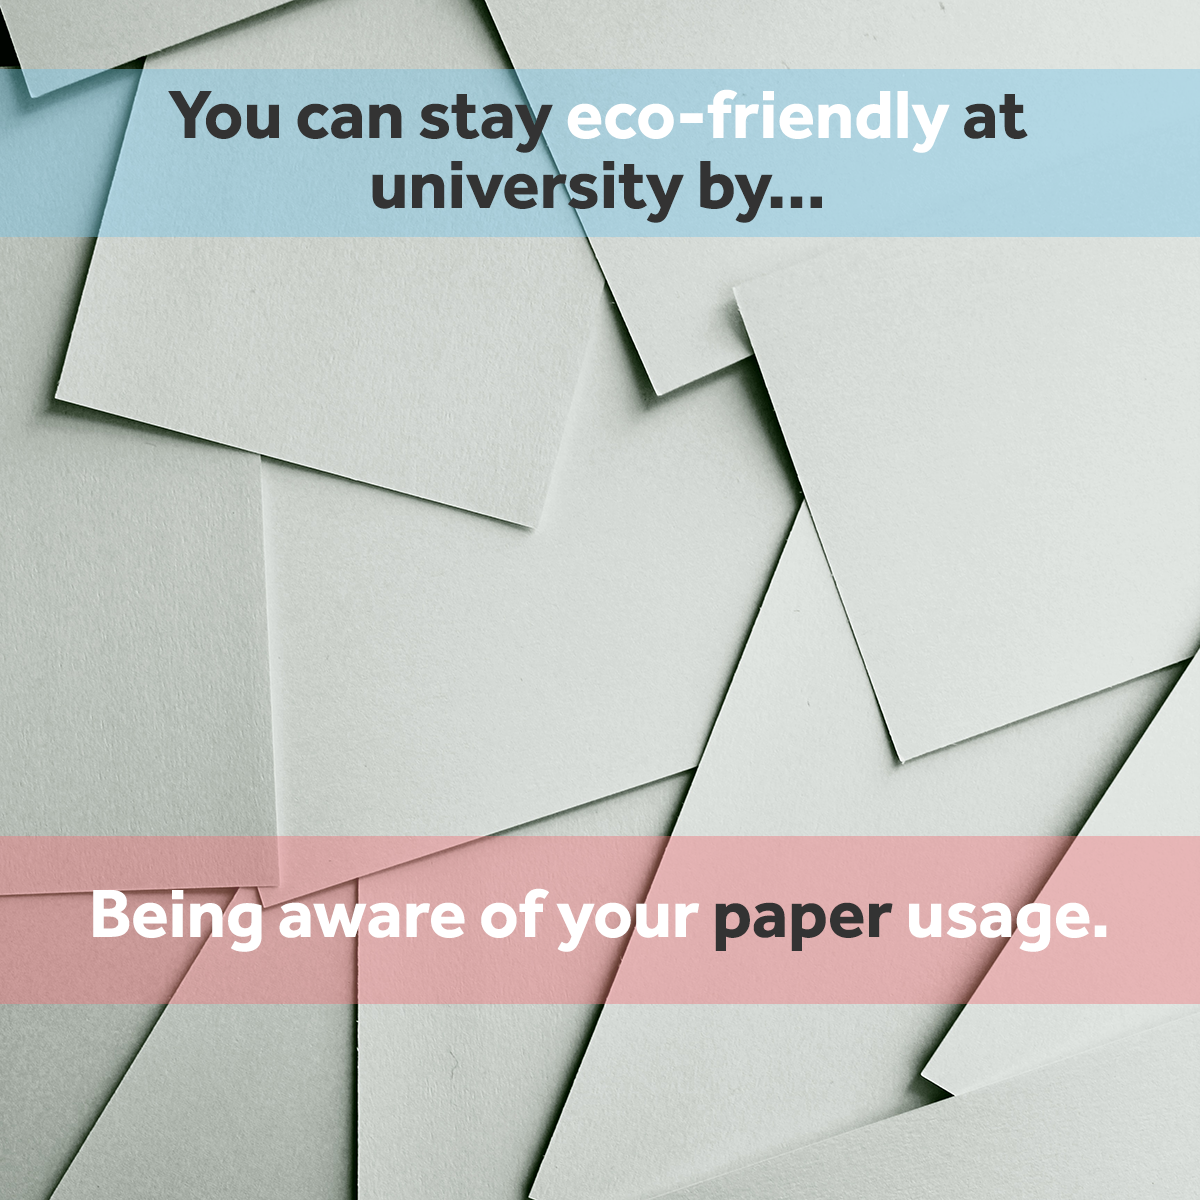 Reduce the amount of paper you use - eco friendly at university